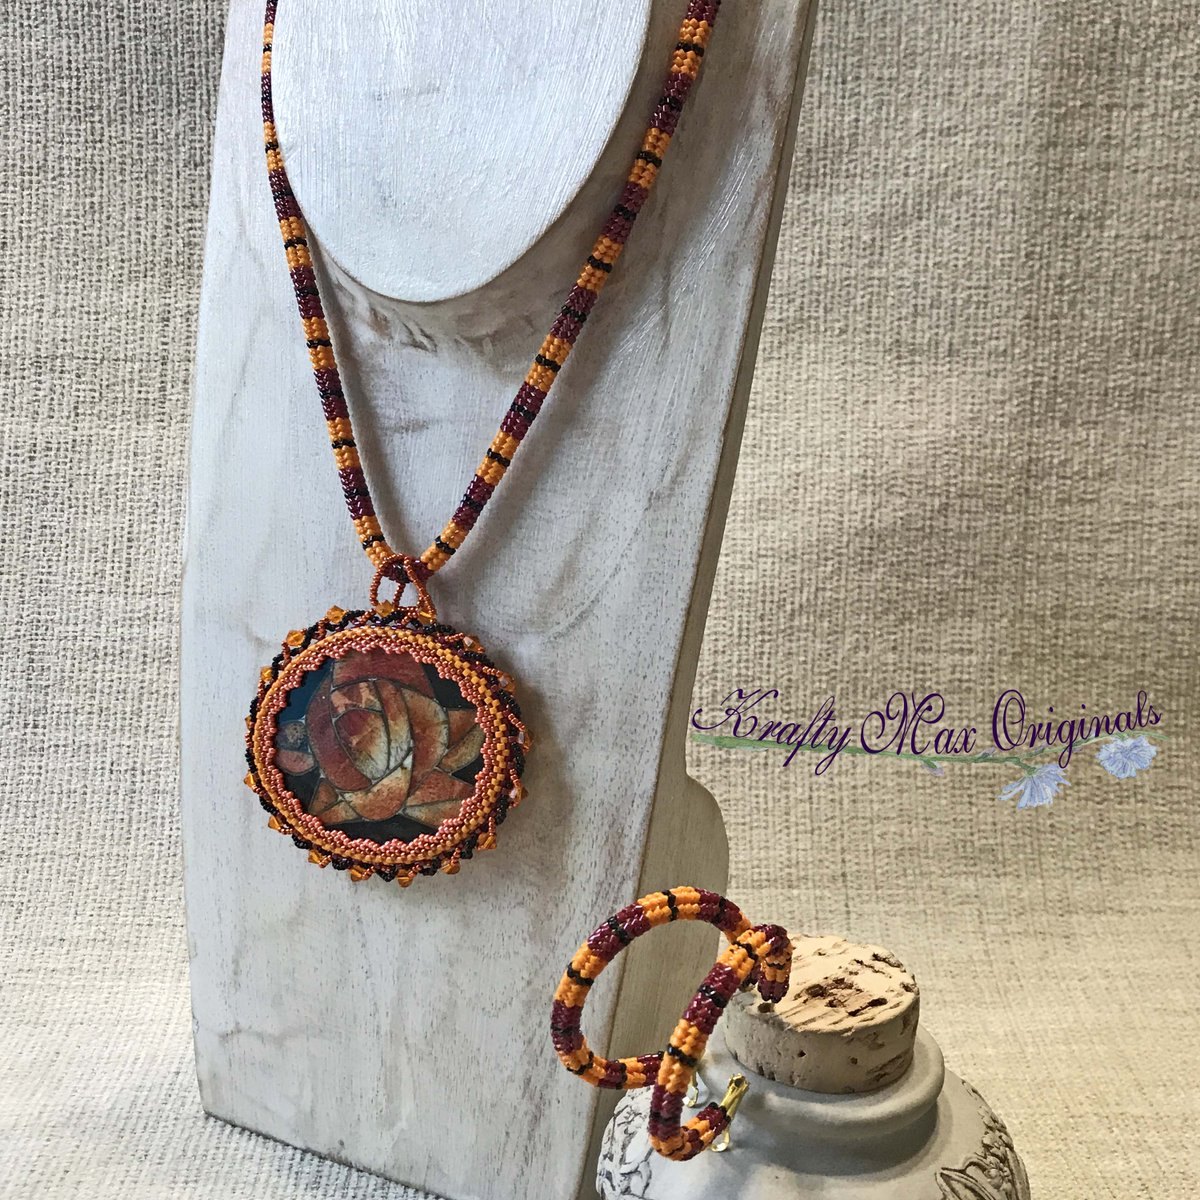 Sunset Rose Beadwoven Wearable Art Necklace and Hoop Earrings Set (discounted from $142 down to $69)  #handmade #jewelry #buyhandmade #handmadelove #handcrafted #kraftymax #kmax #discount #sale #bargain #save #clearance